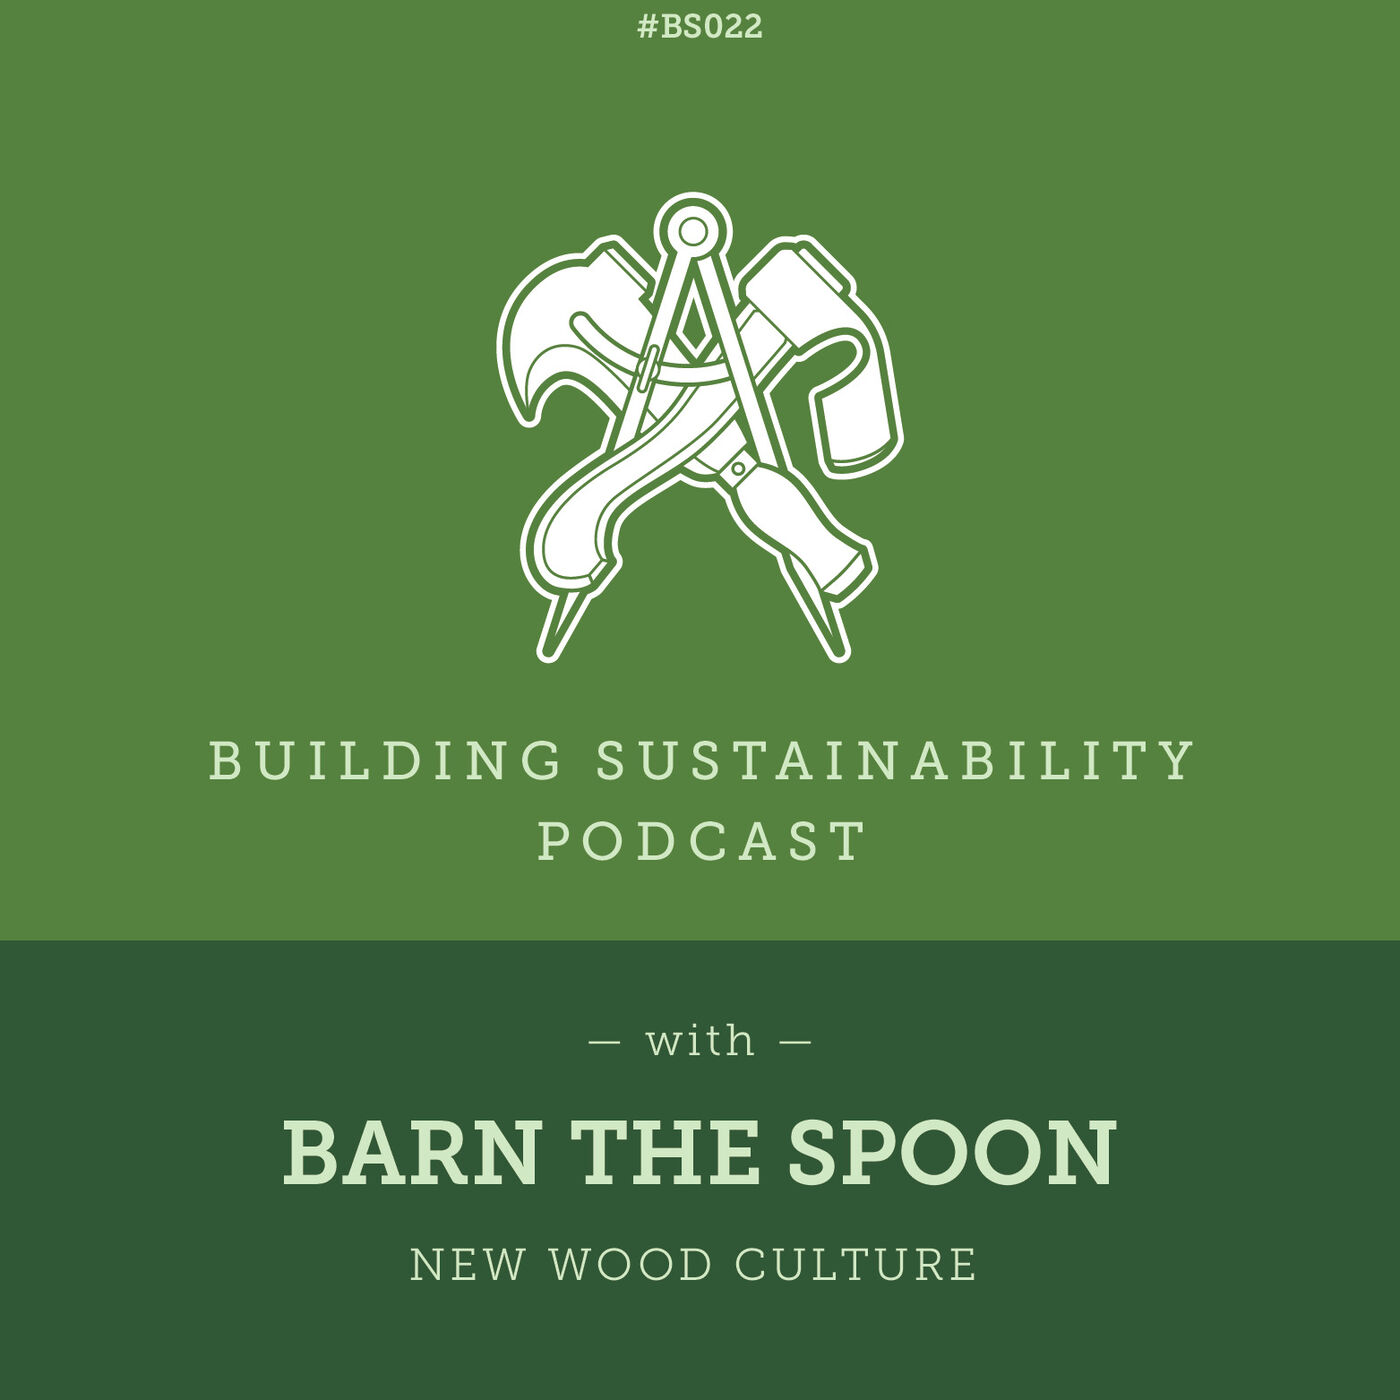 New Wood Culture - Barn the Spoon - BS022